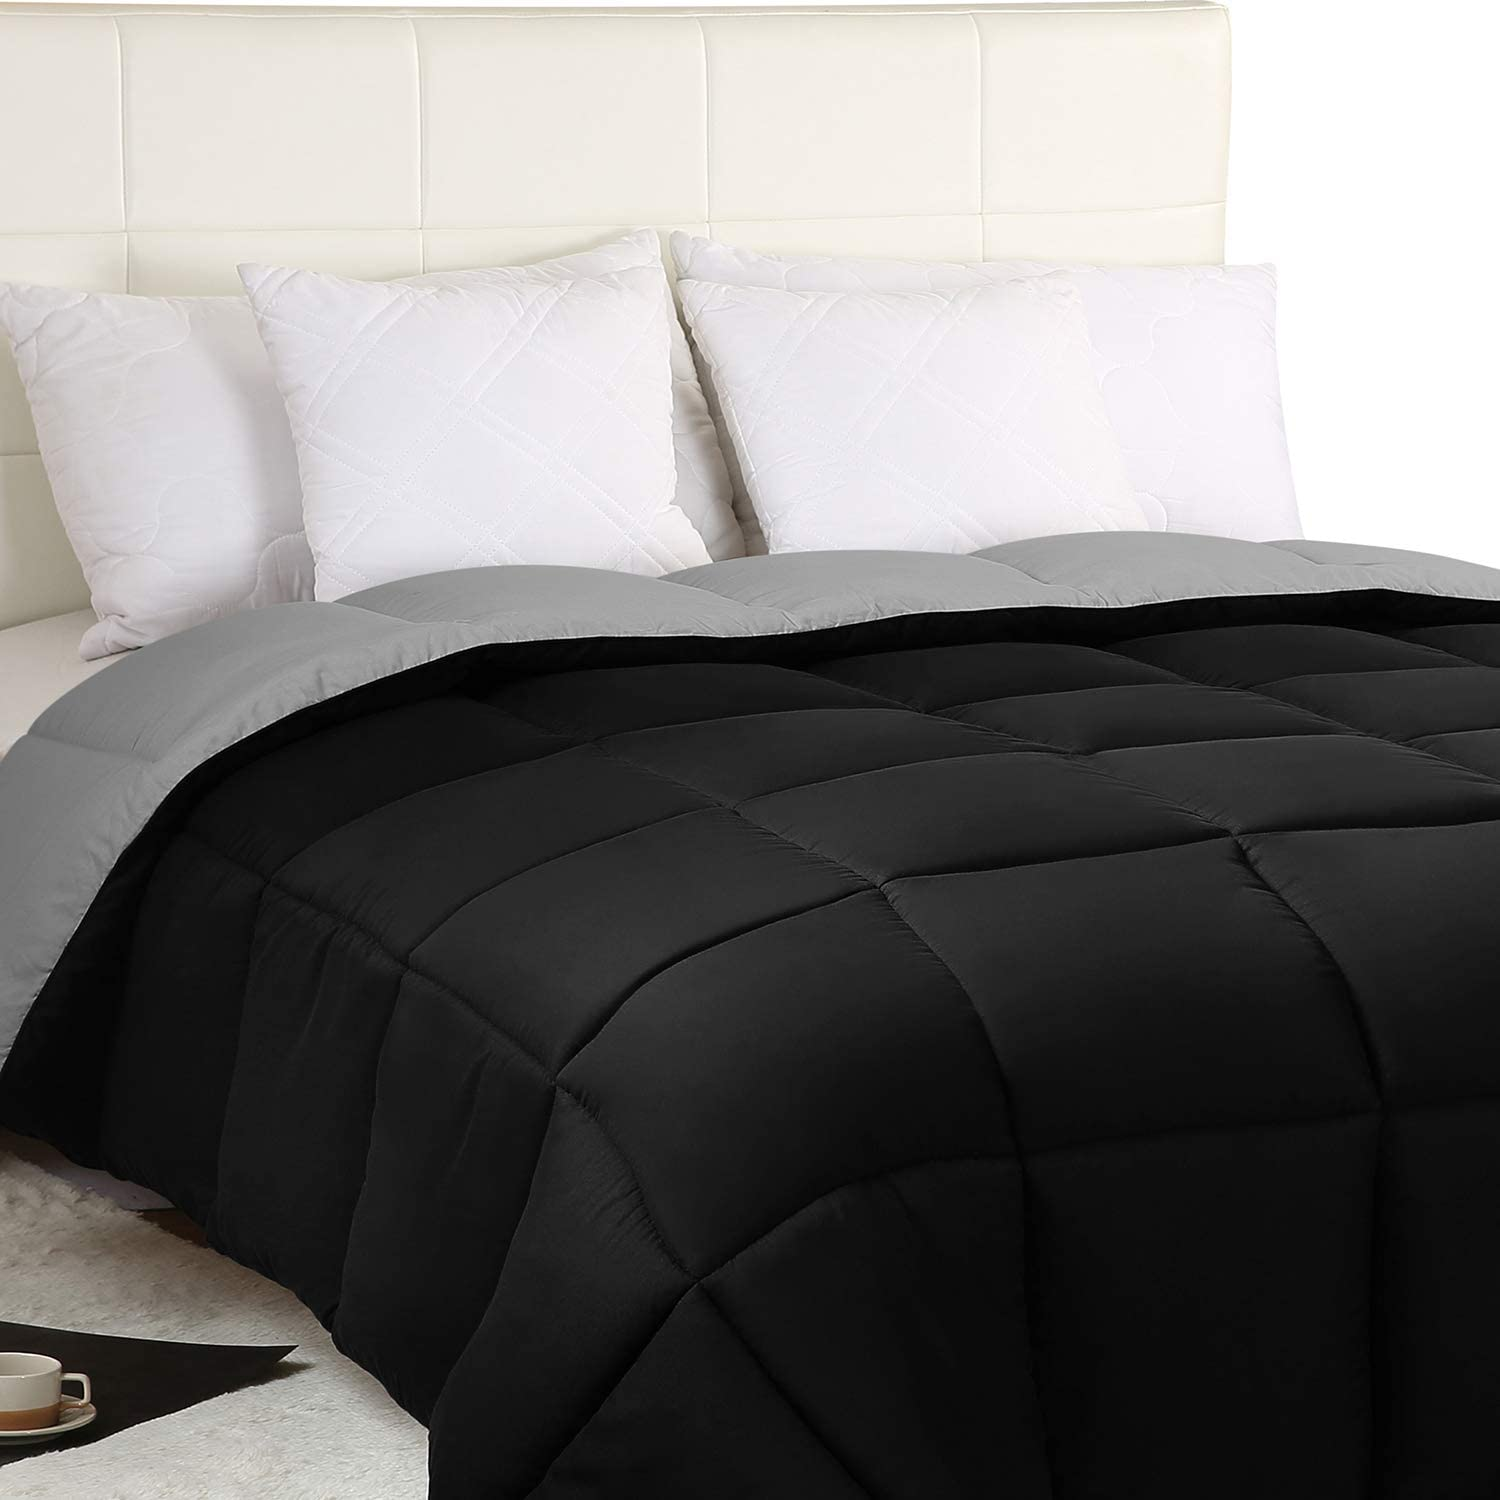 Utopia Bedding Comforter Duvet Insert - Quilted Comforter with Corner Tabs - Box Stitched Down Alternative Comforter (Black/Grey, King)